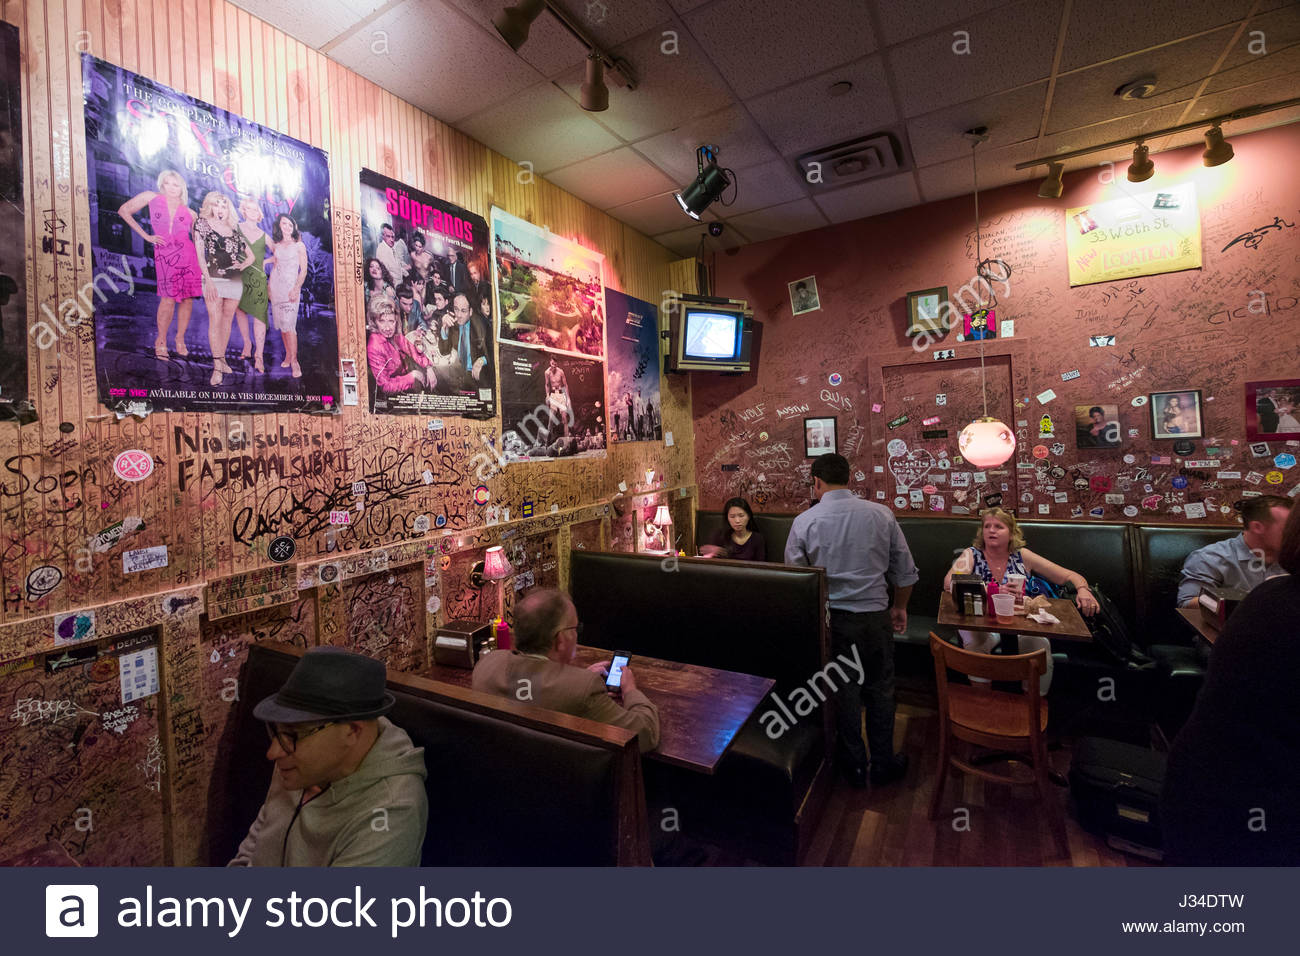 People sitting in booths and at counter eating lunch in the burger joint W 56th St., New York, NY, USA - Stock Image